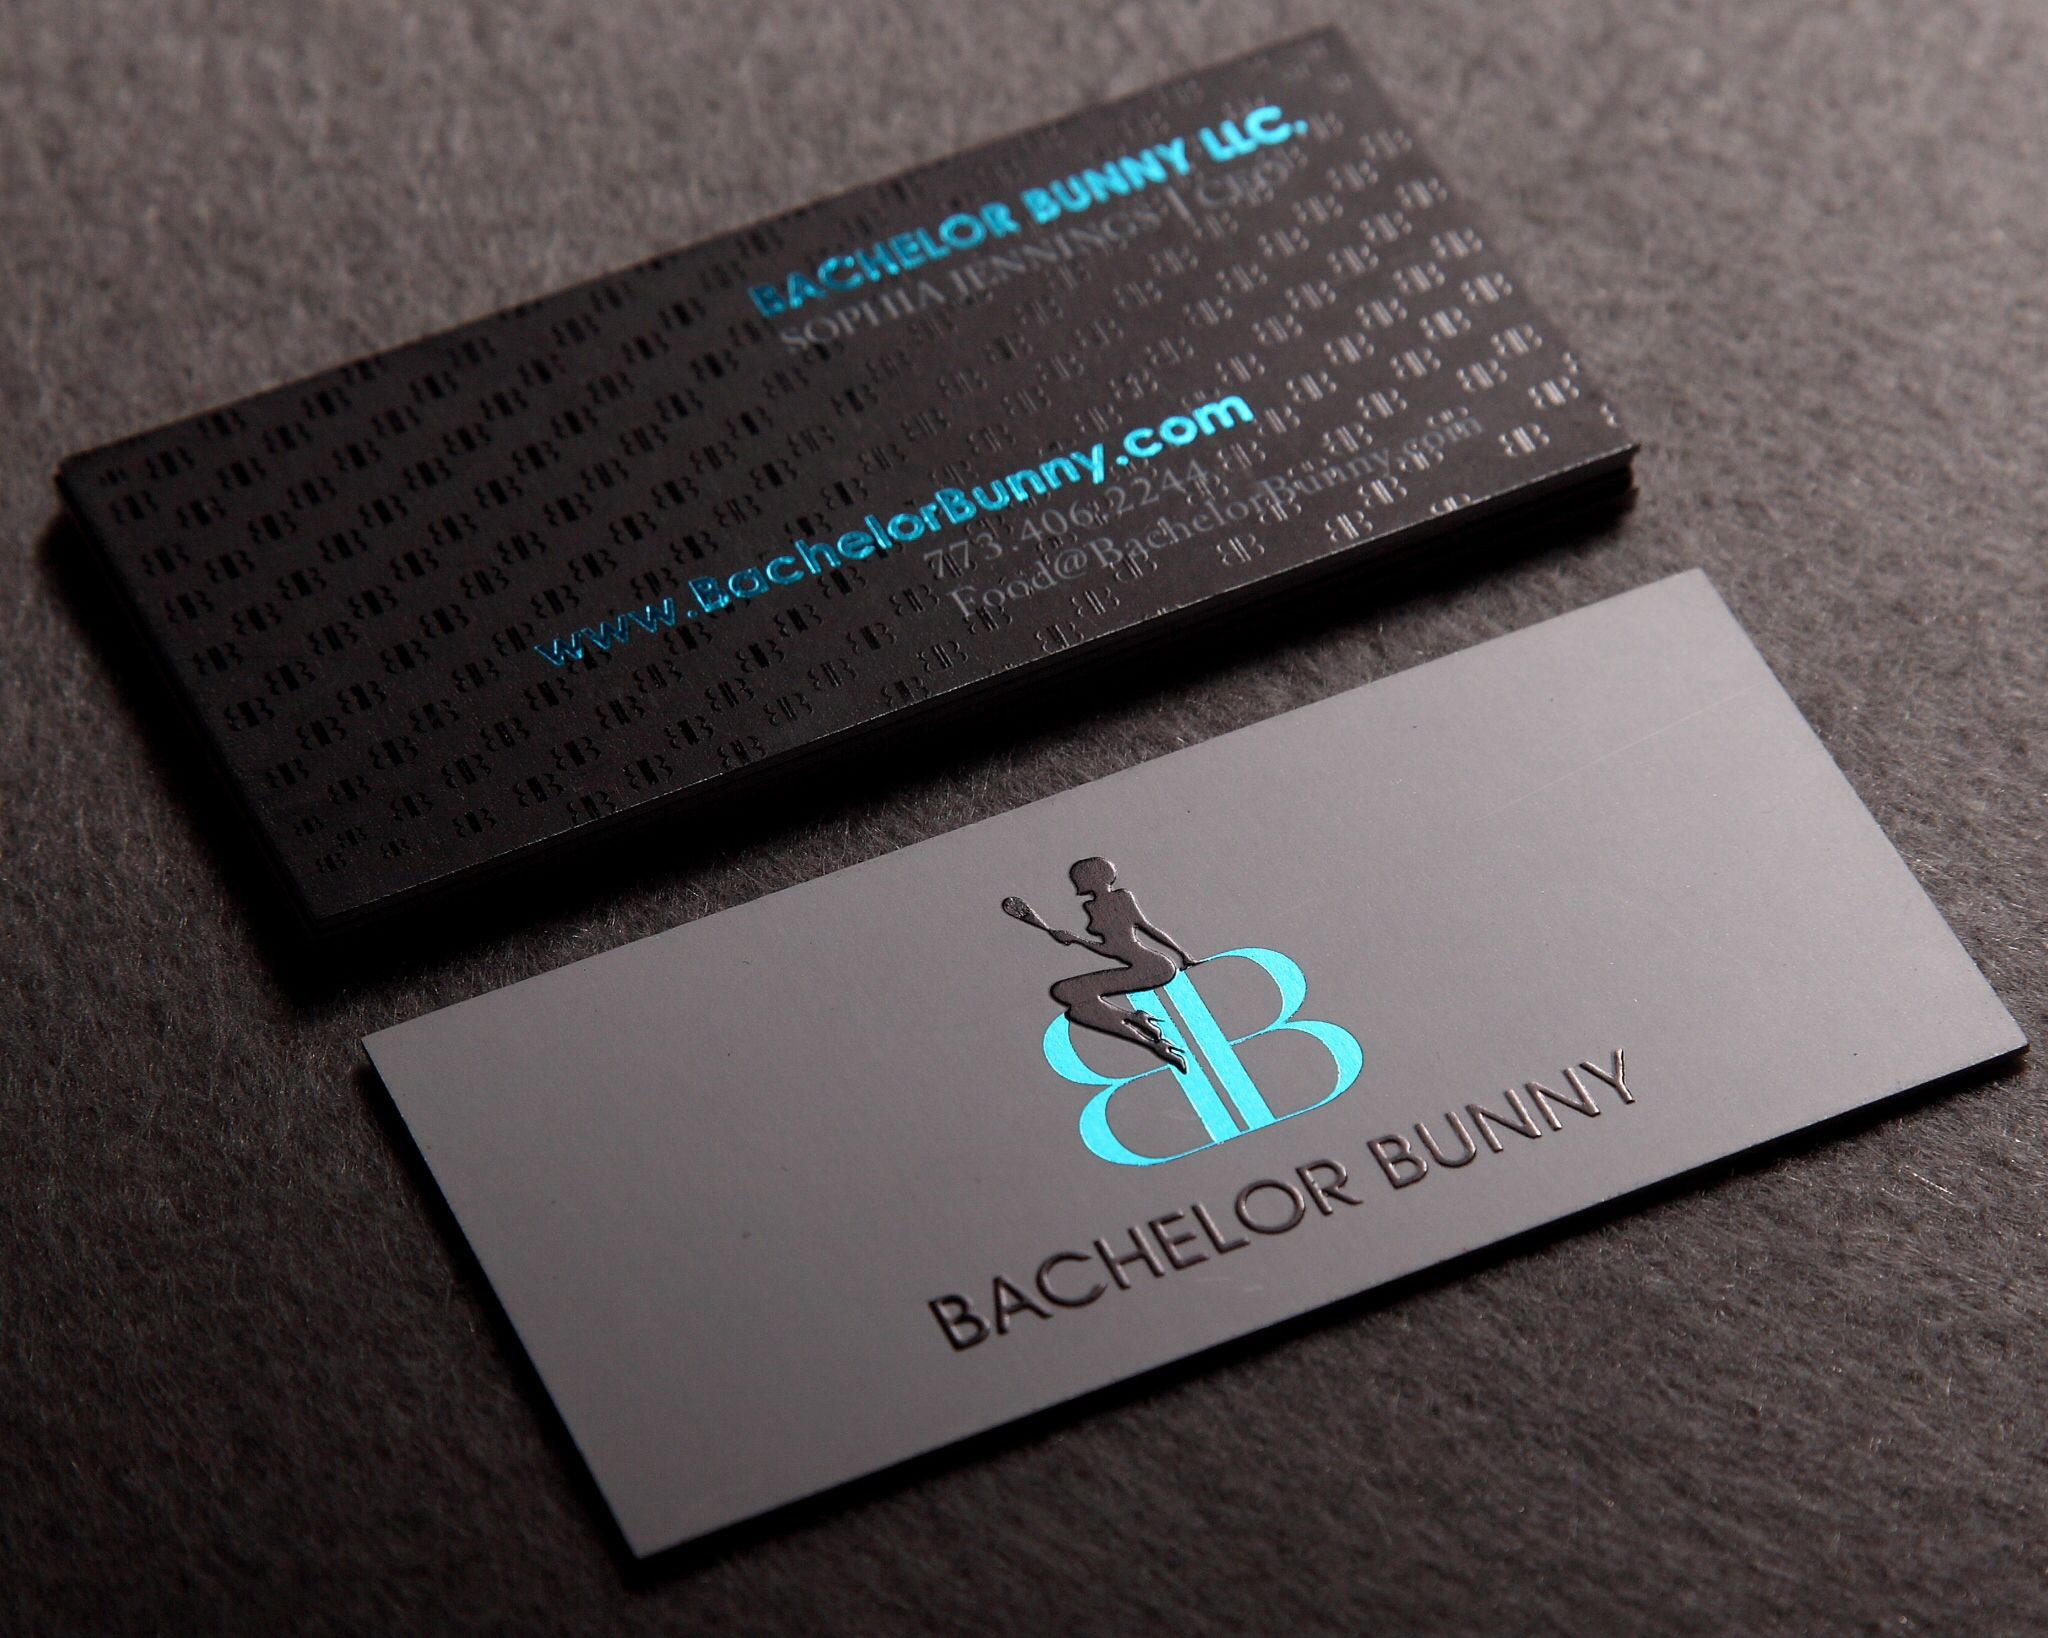 20 best unique business cards images on pinterest unique business custom sized silkcards black business card w spot uv and blue foil colourmoves